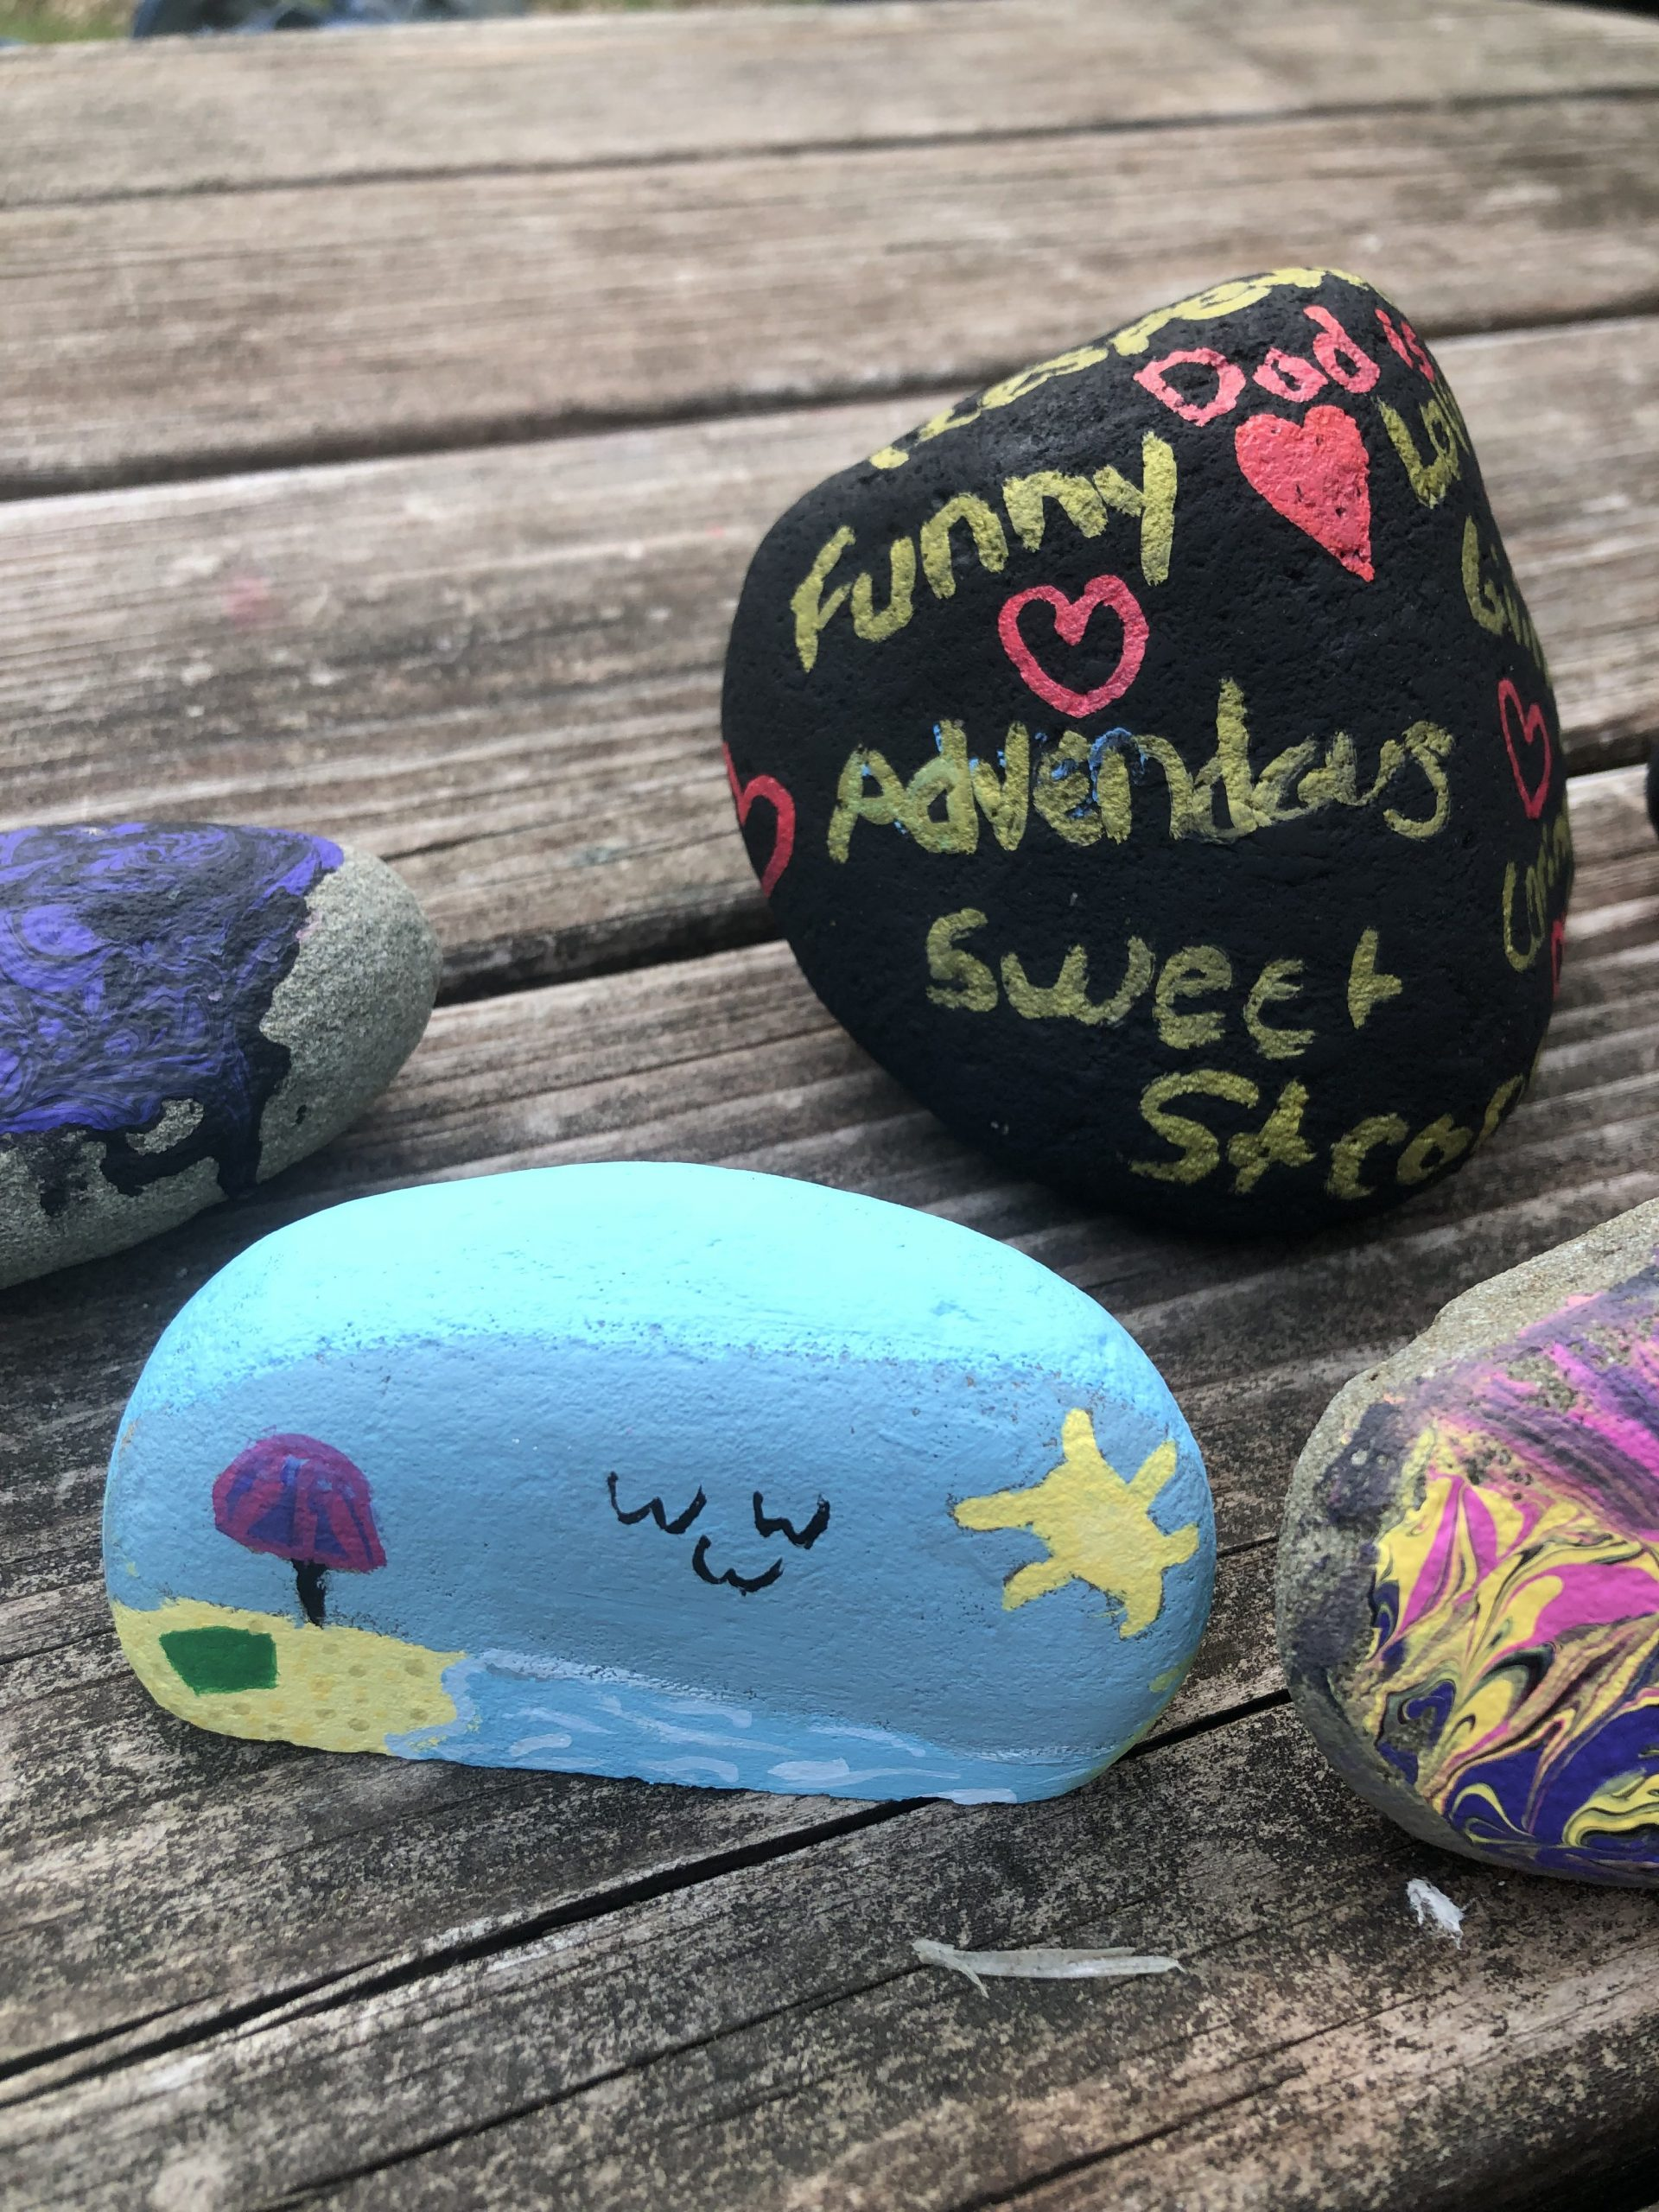 """Looking for a fun and easy Father's Day craft. With these rocks, you get to tell Dad just how special he is. Make """"My Dad Rocks"""" rocks and see how much he smiles. It is an easy and inexpensive Father's Day gift kids can make themselves."""